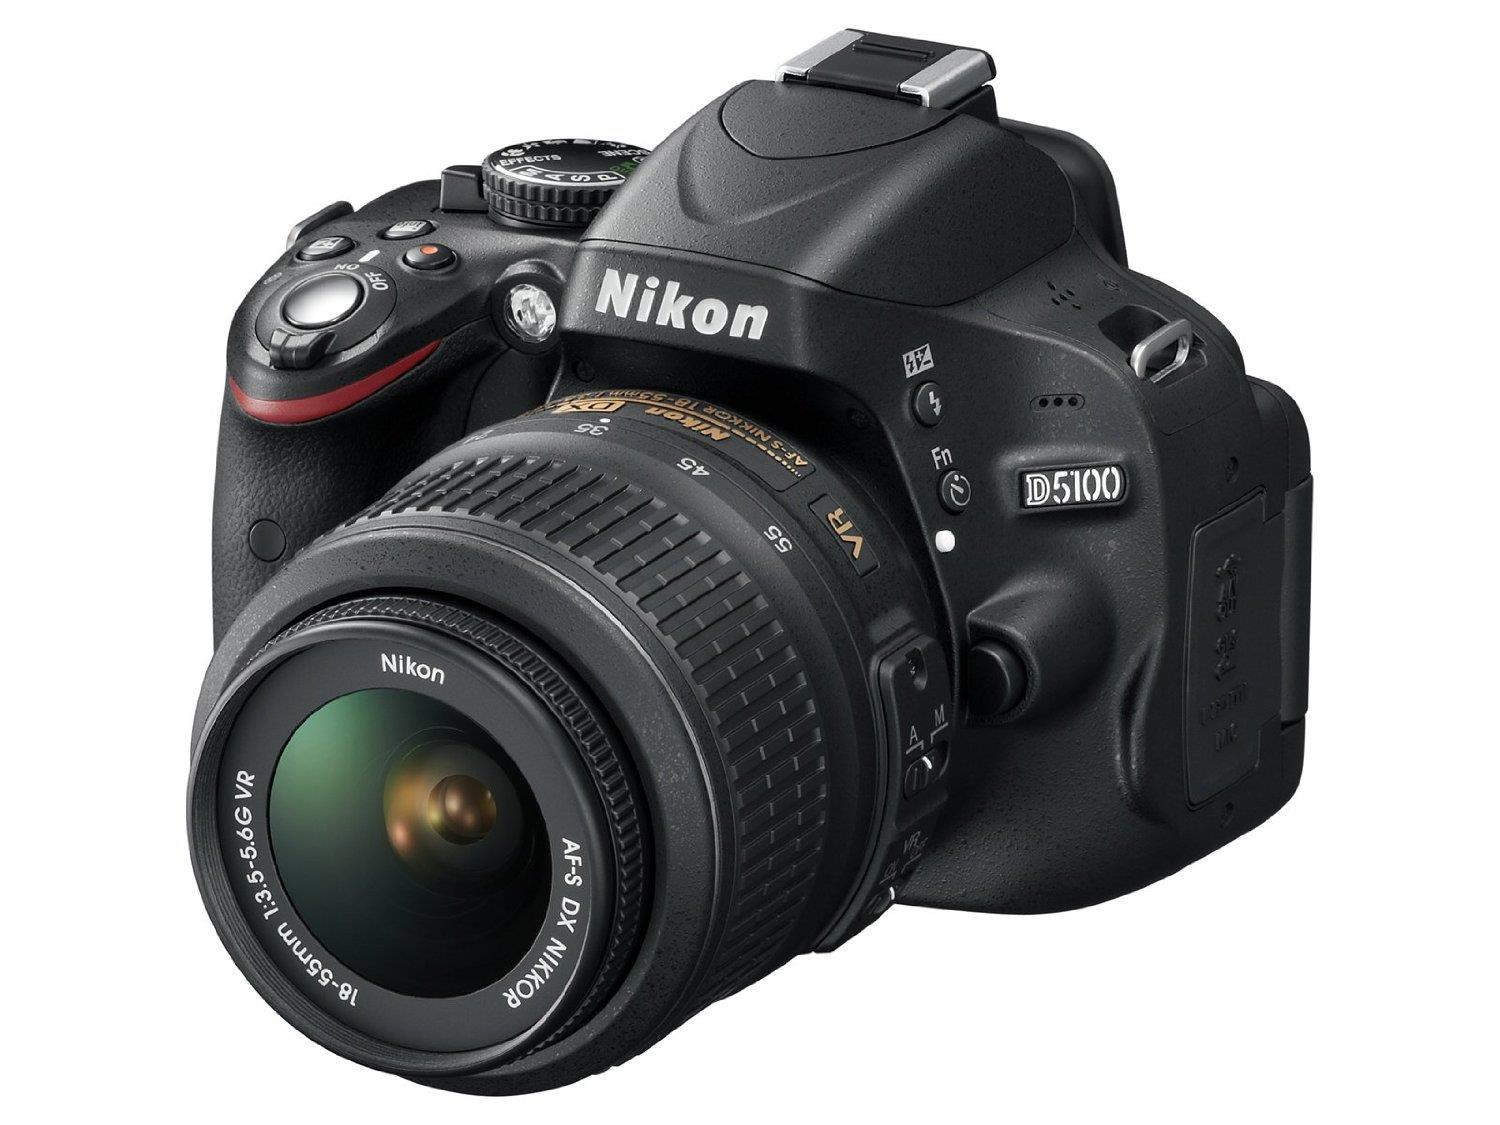 NIKON D5100 Photos Images And Wallpapers